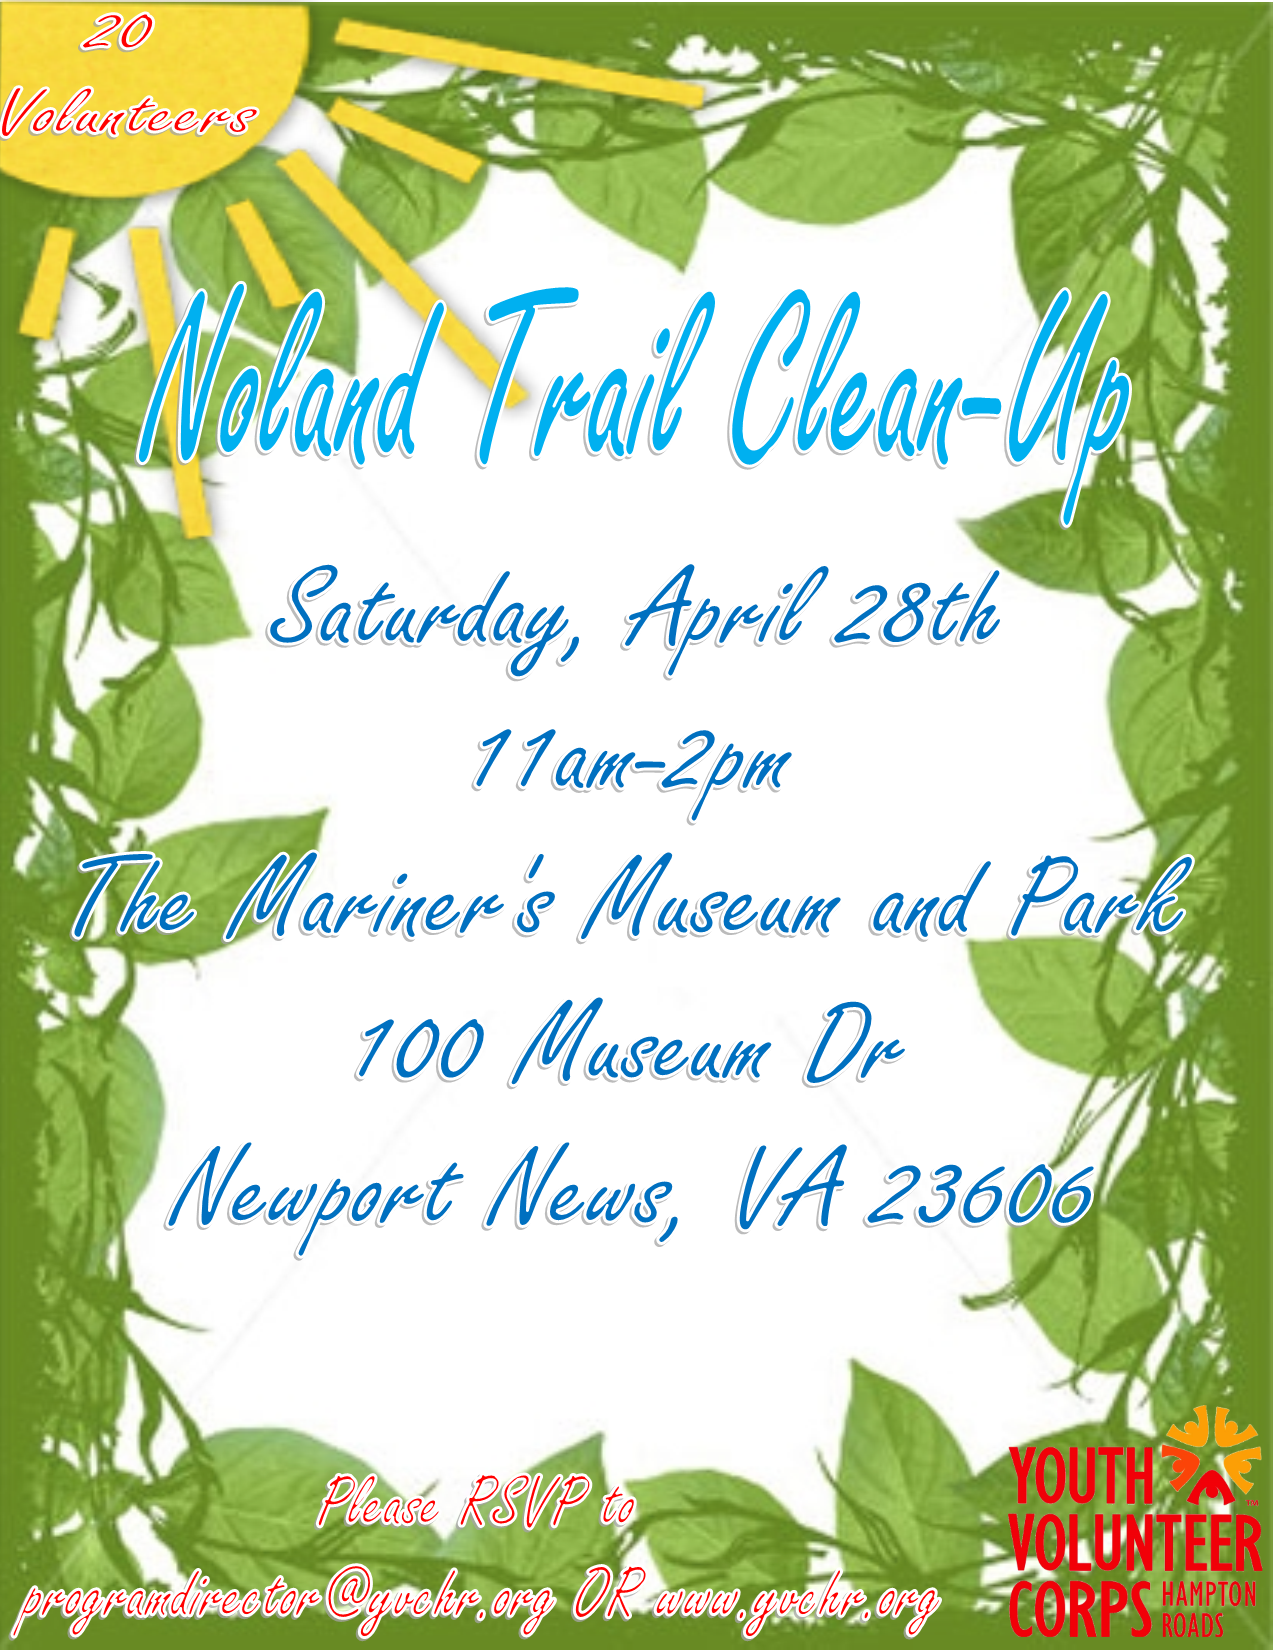 Noland Trail Clean-up.png